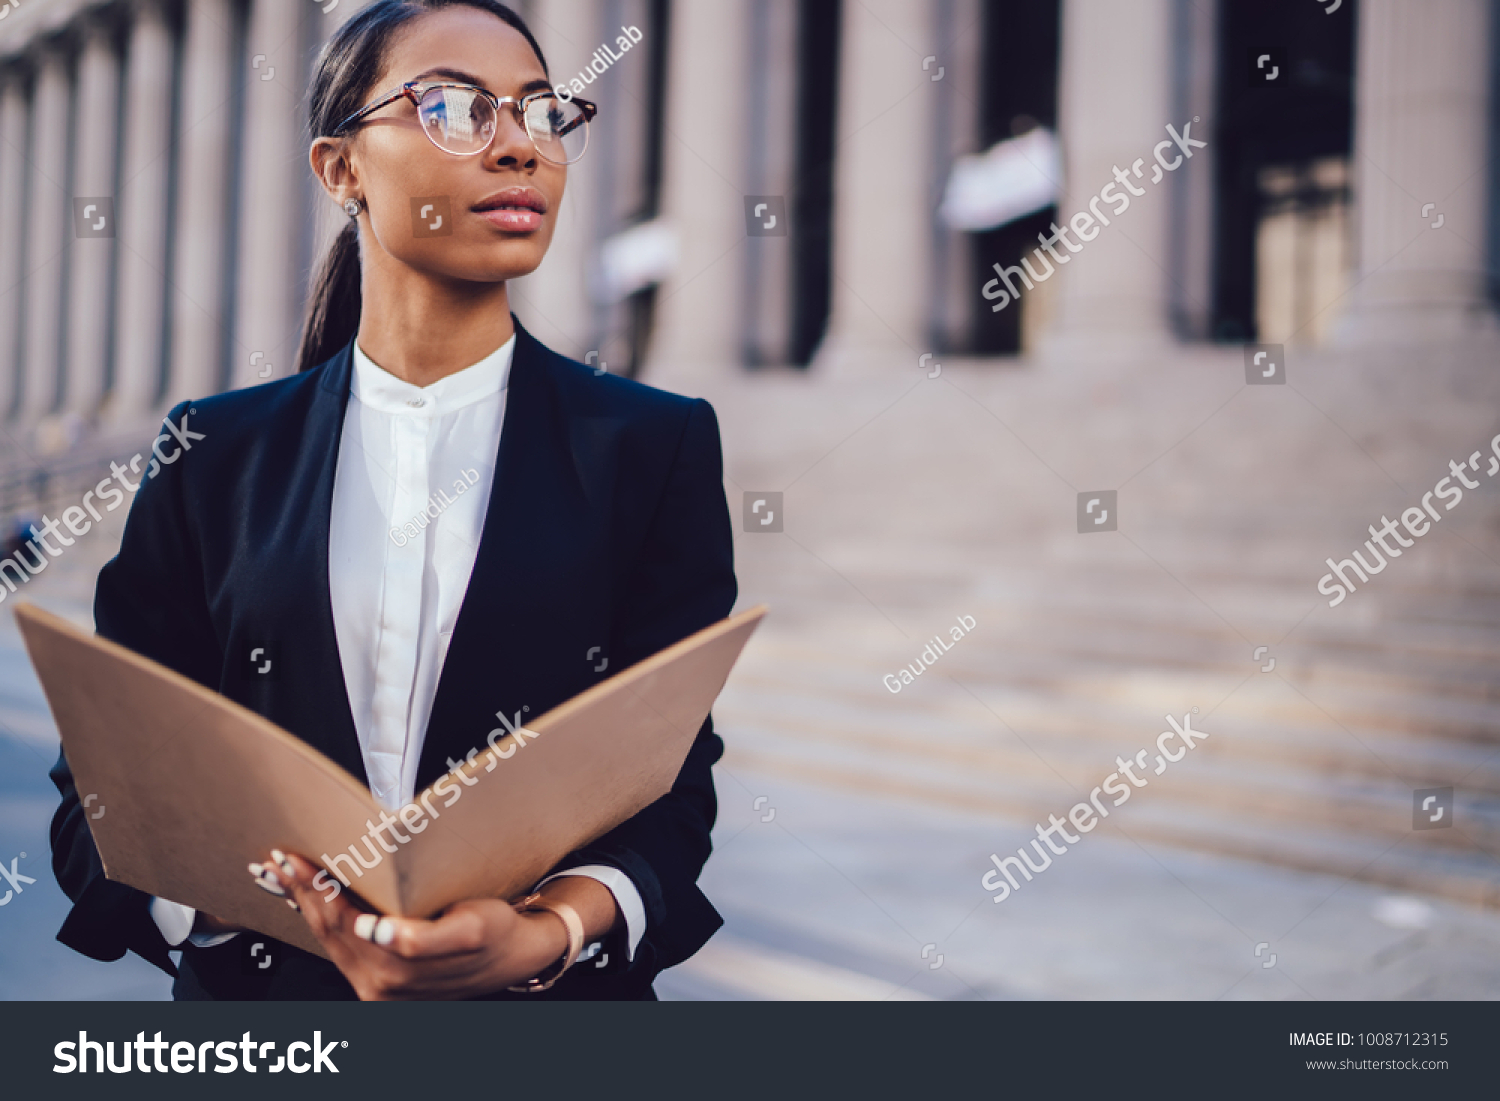 stock-photo-thoughtful-dark-skinned-female-financial-manager-in-black-suit-holding-folder-in-hands-while-1008712315.jpg